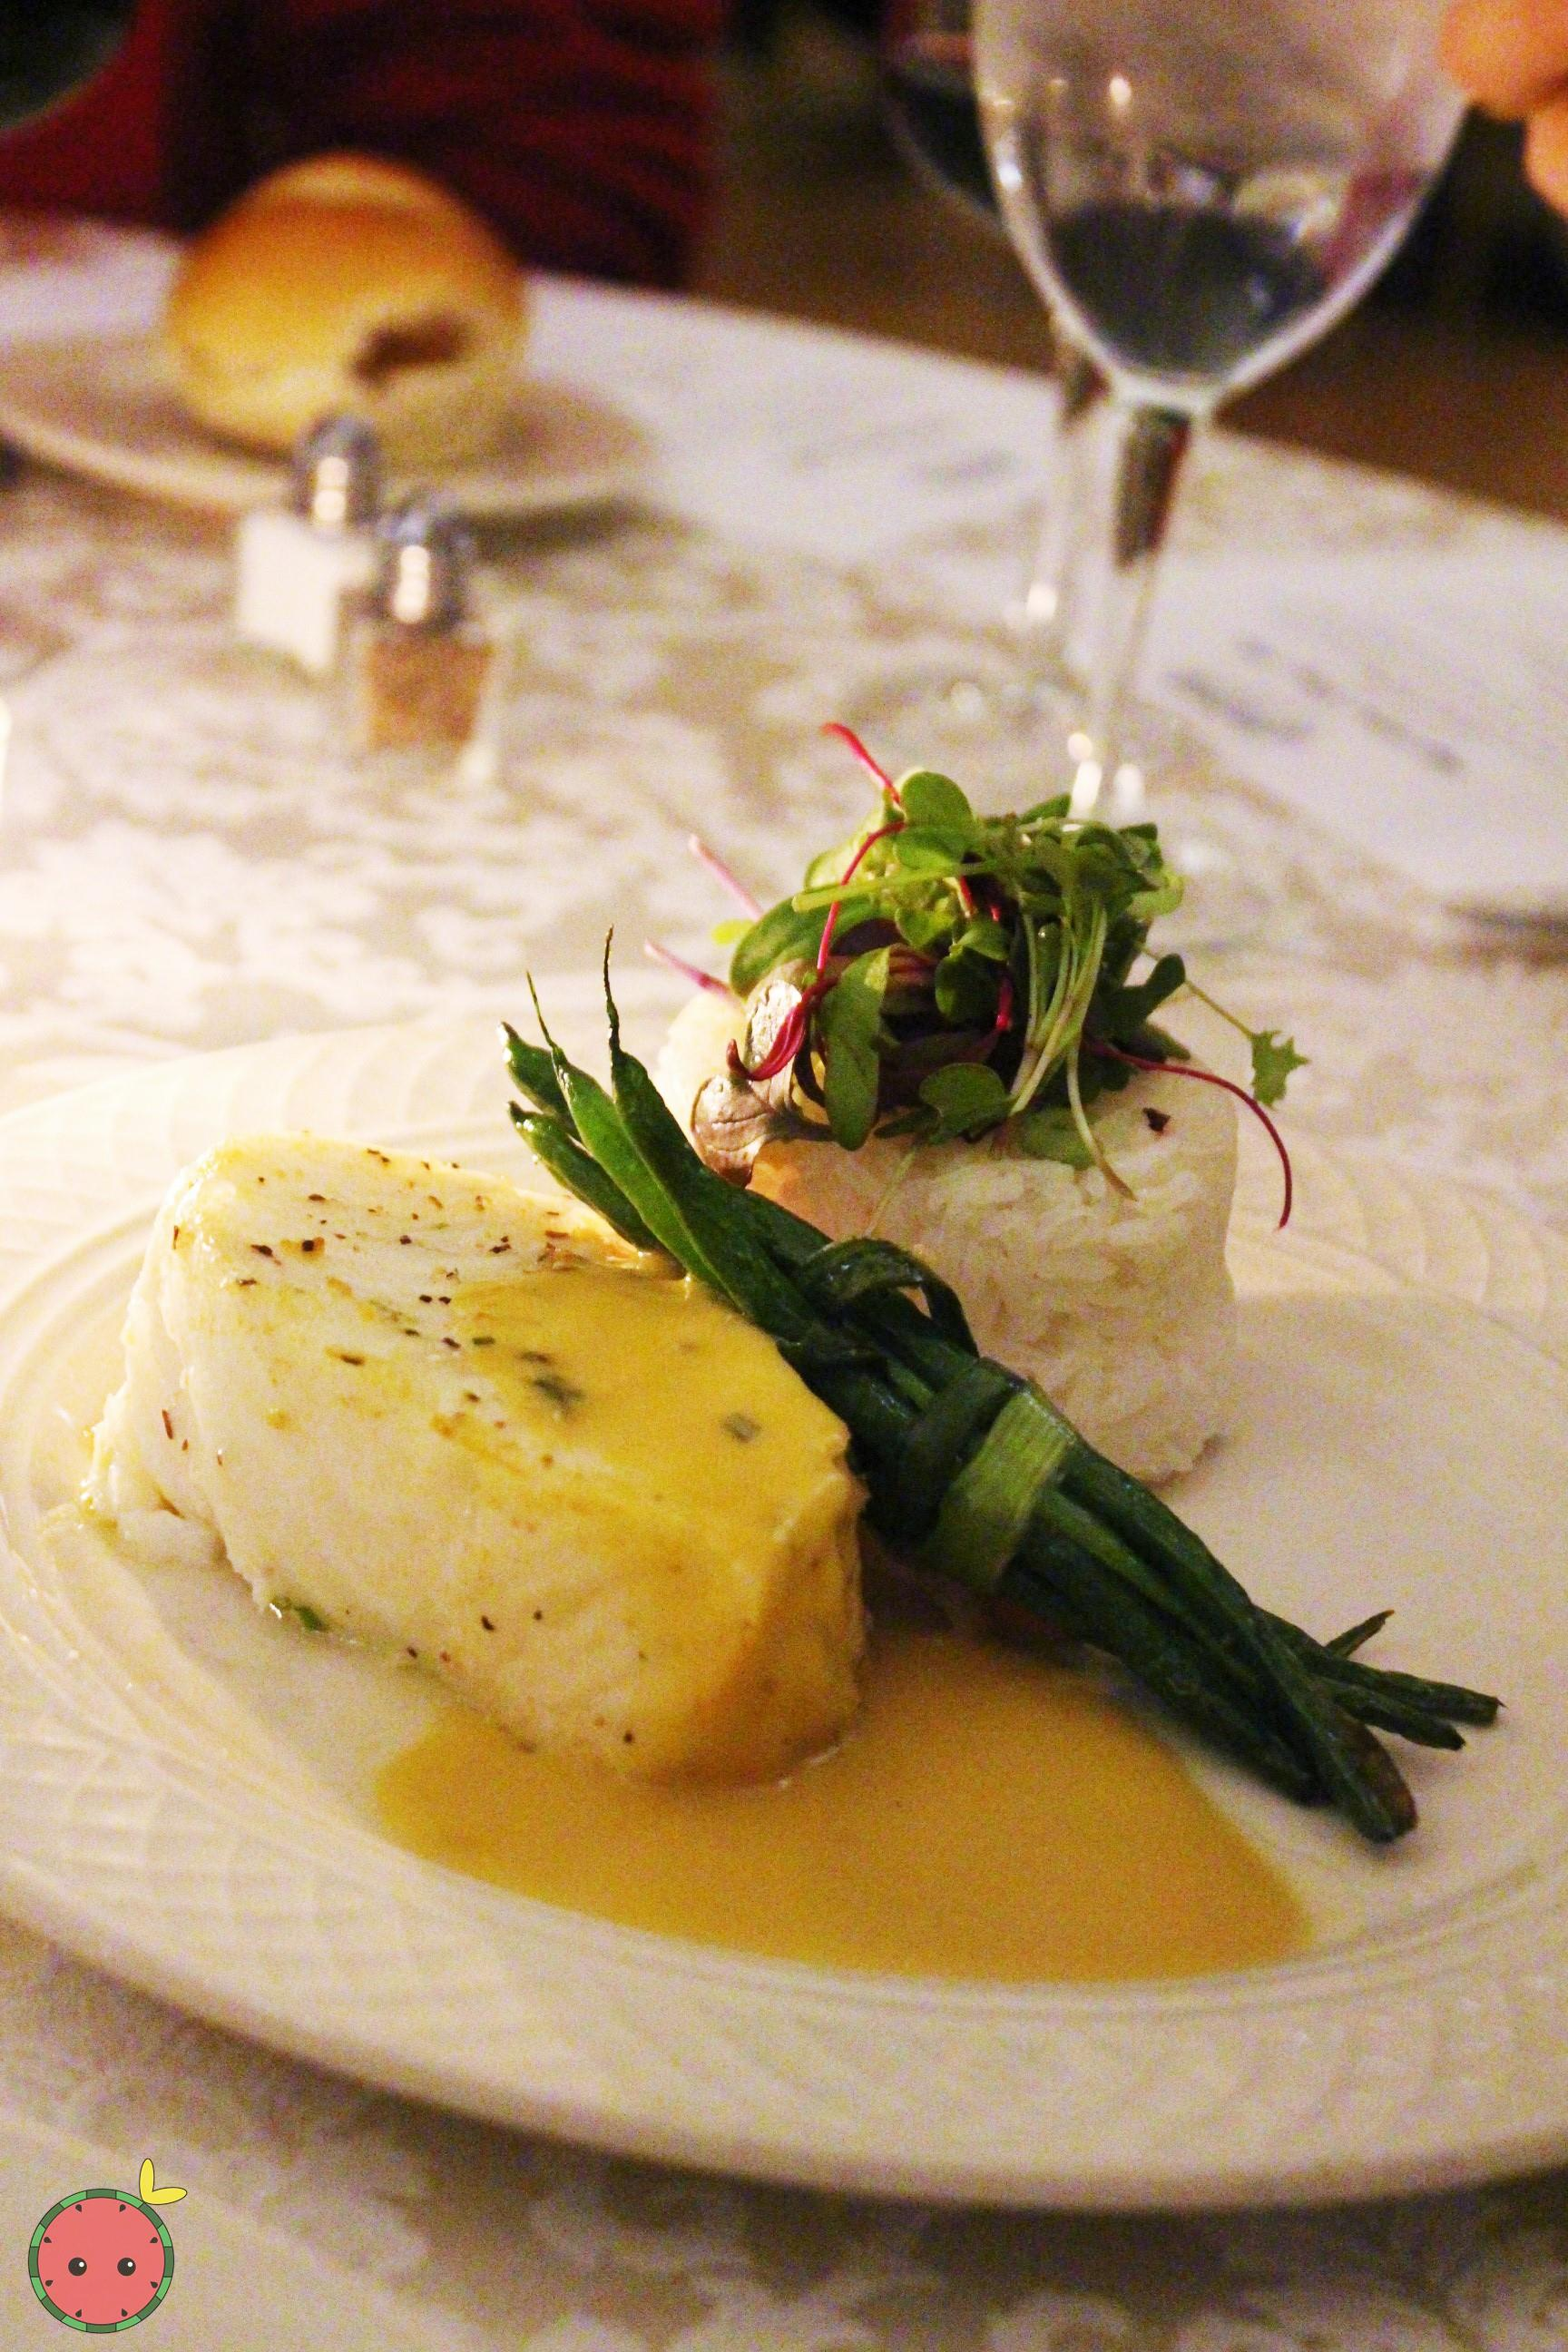 Pan seared chilean sea bass, steamed jasmine rice and citrus fondue